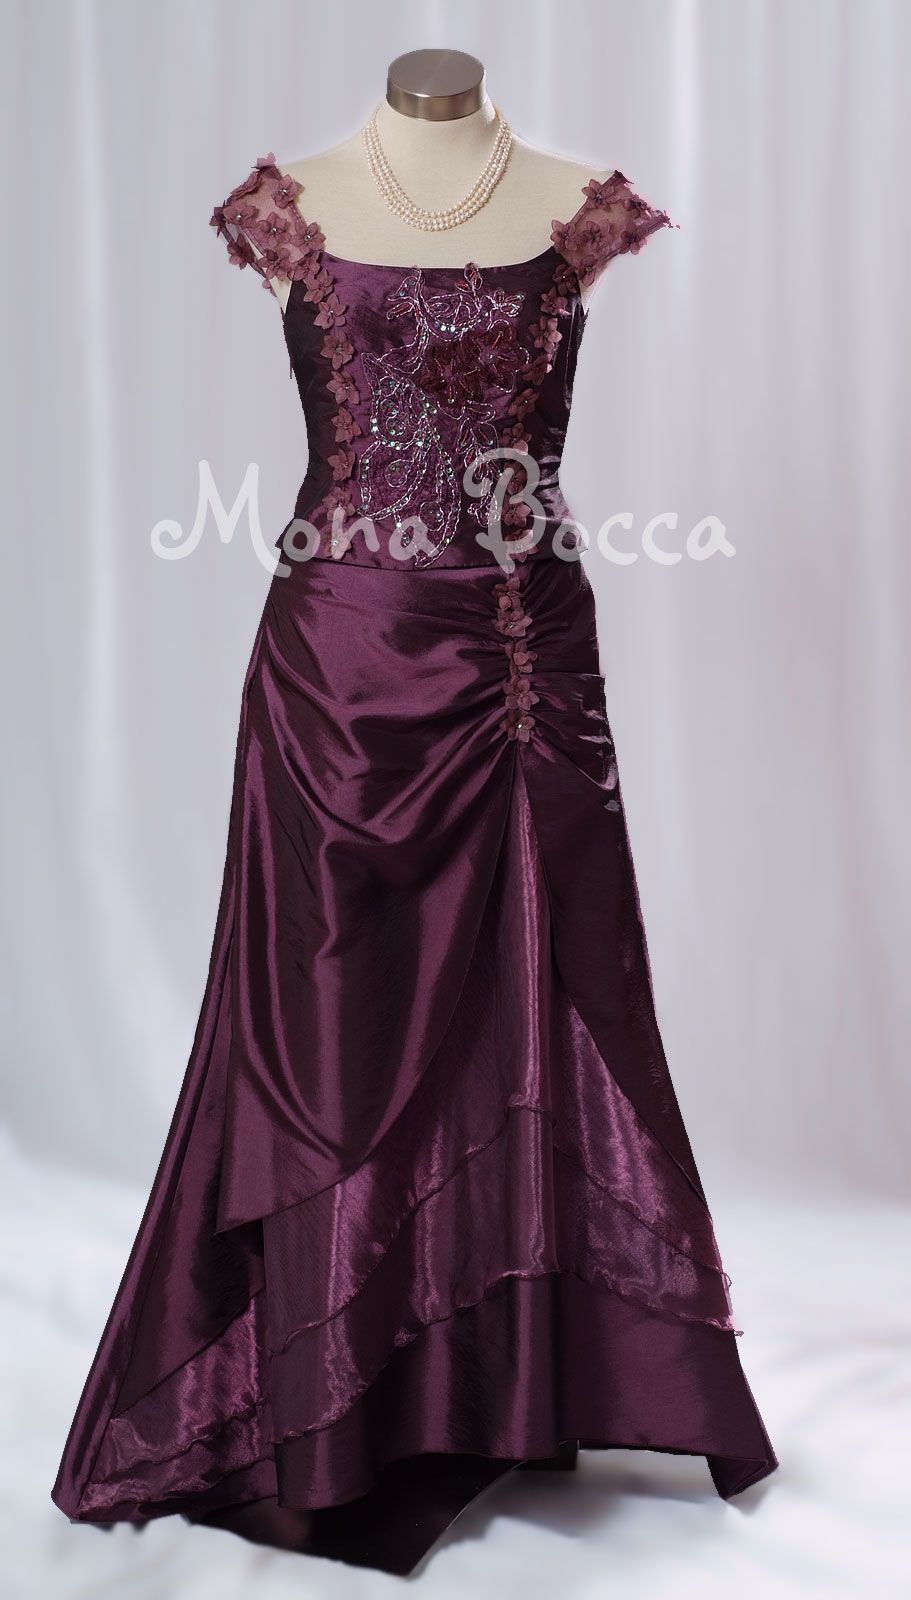 Mauve Titanic Ball Masquerade Dress | Masquerade | Pinterest